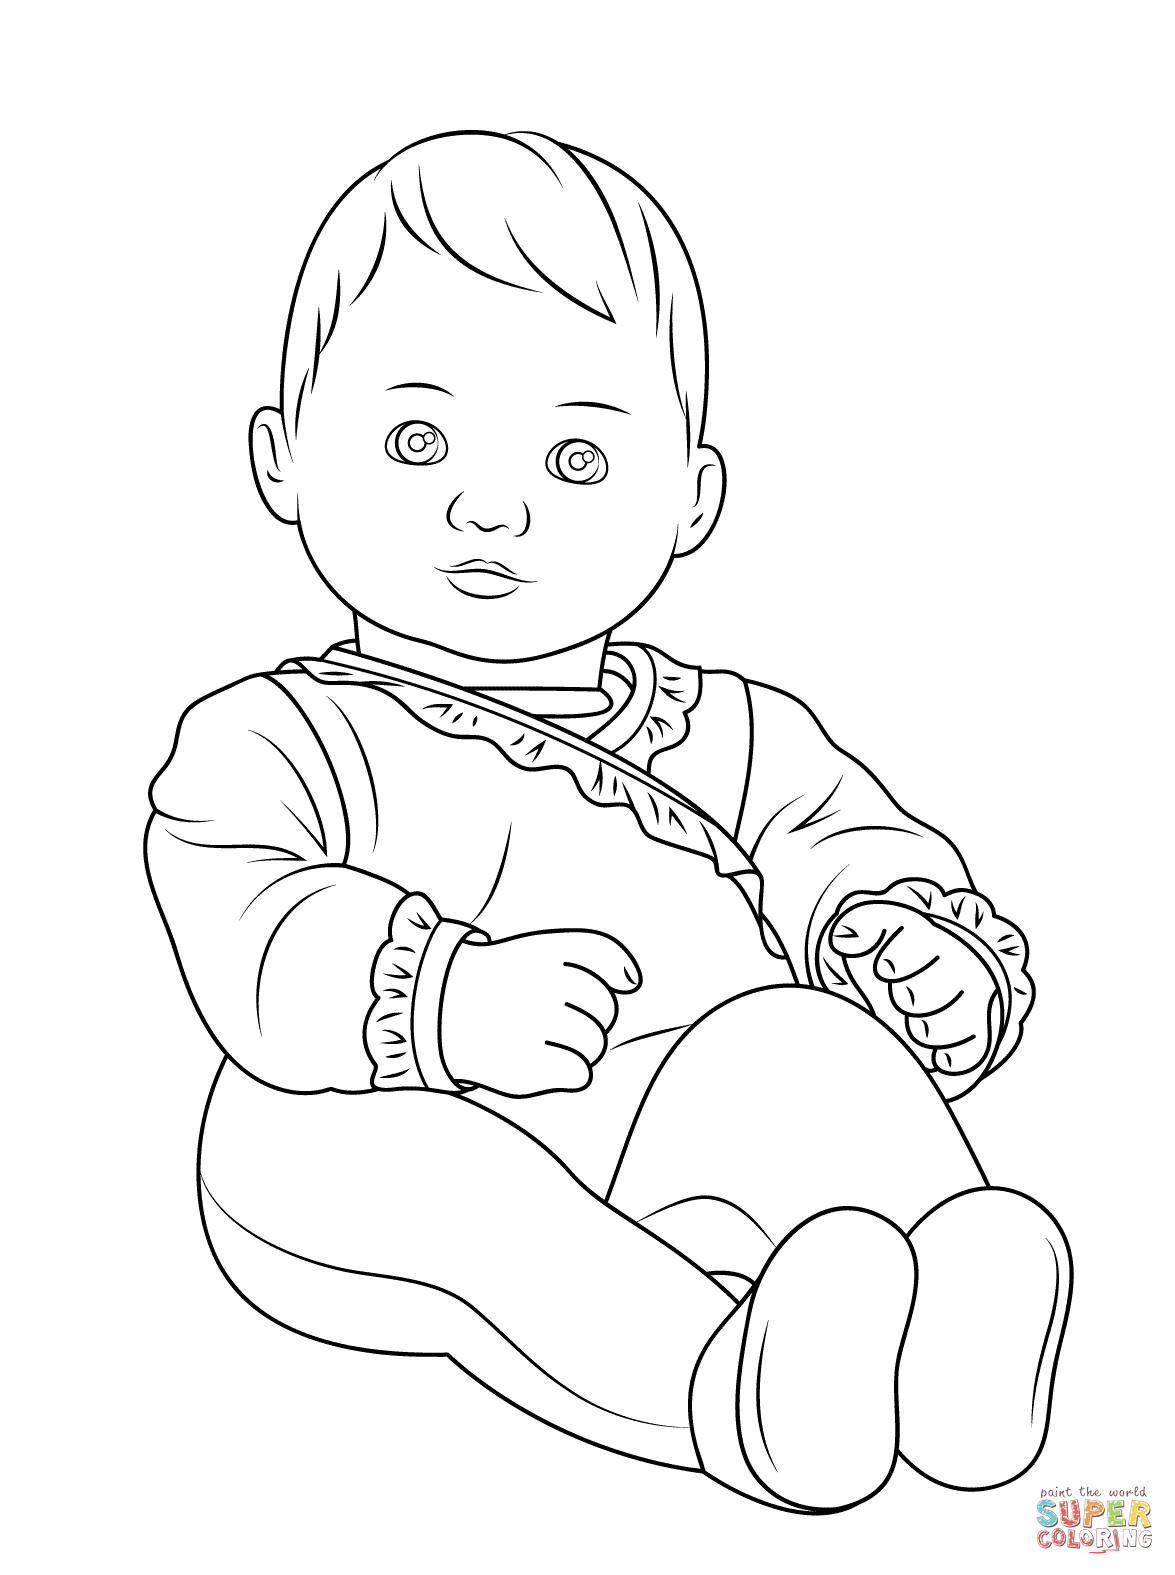 free printable american girl doll coloring pages american girl doll drawing at getdrawings free download free printable american coloring girl doll pages